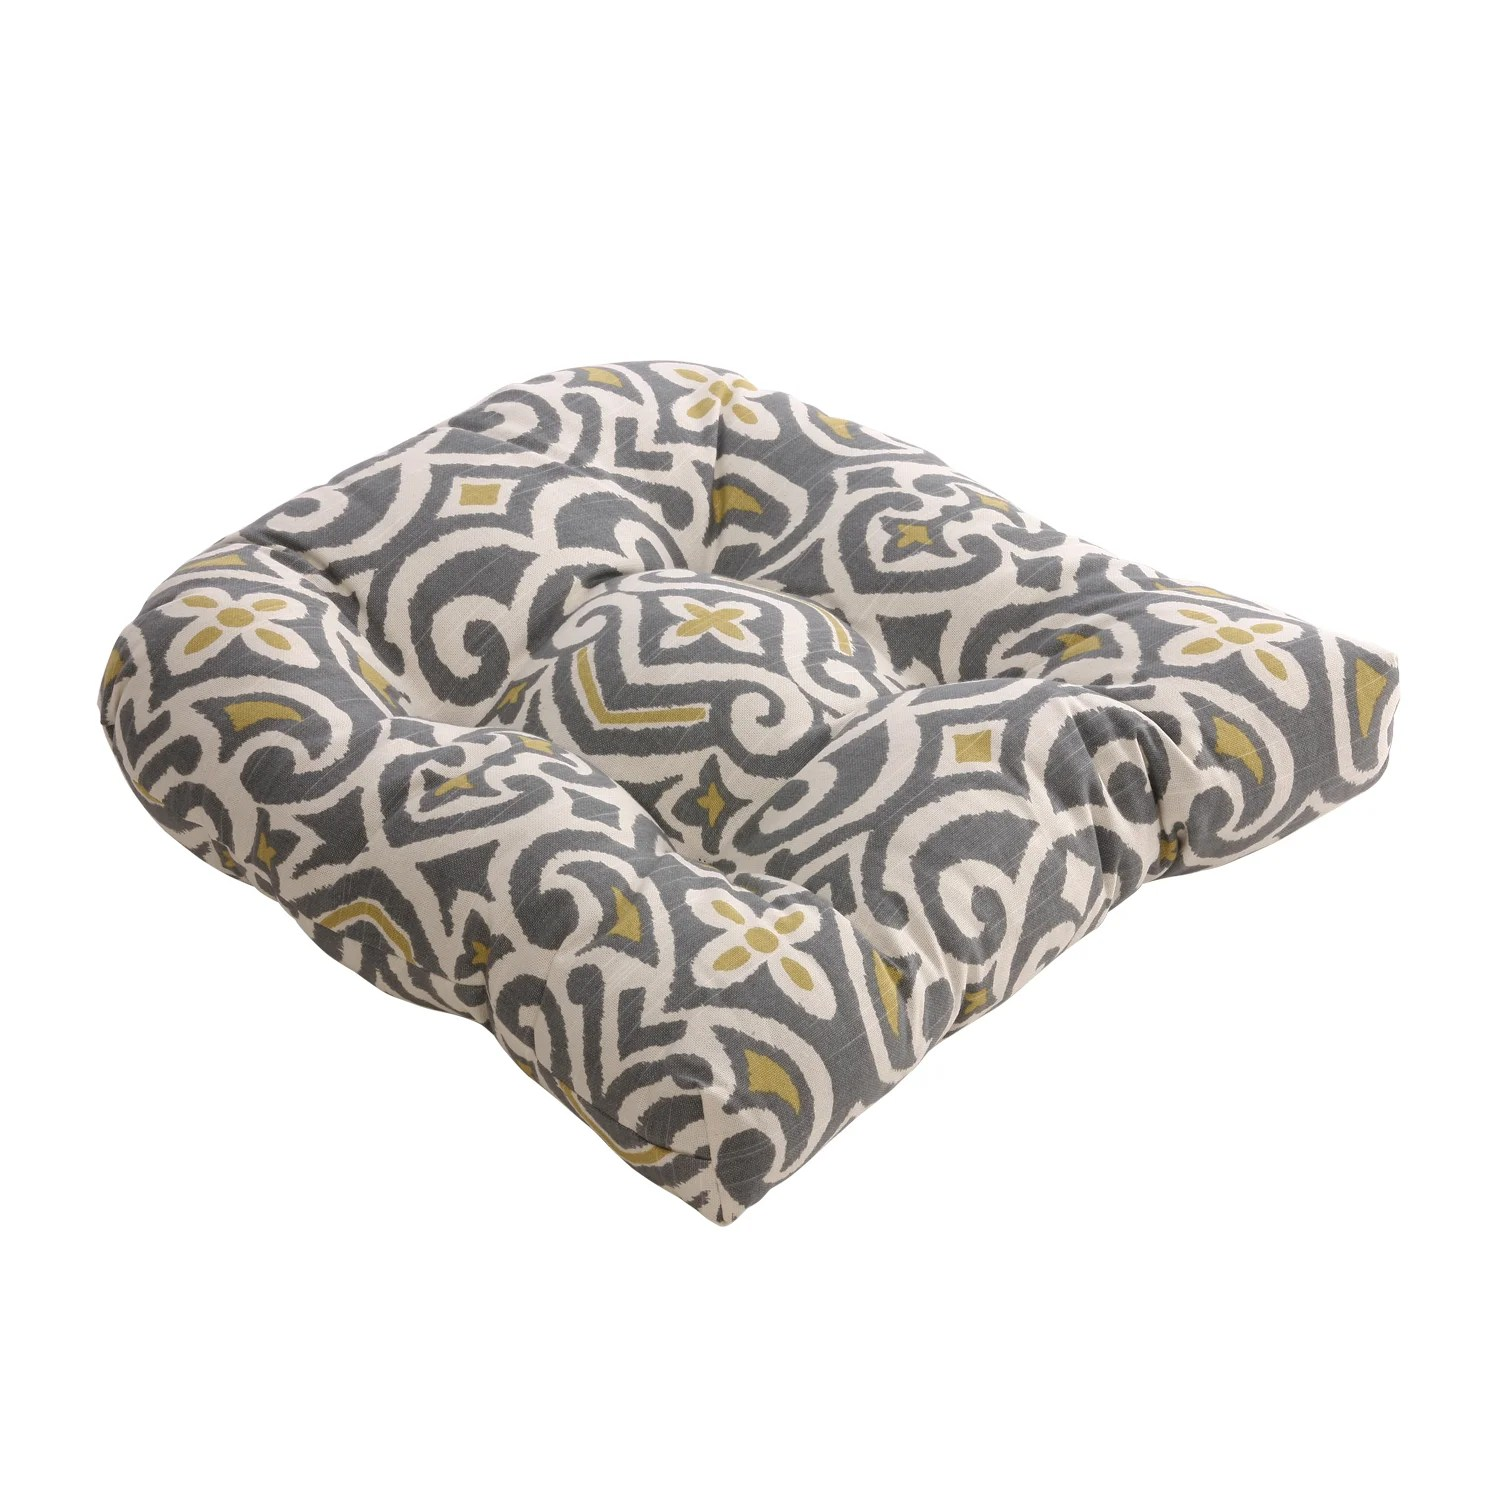 grey chair cushions hanging stand for sale pillow perfect gray greenish yellow damask reversible